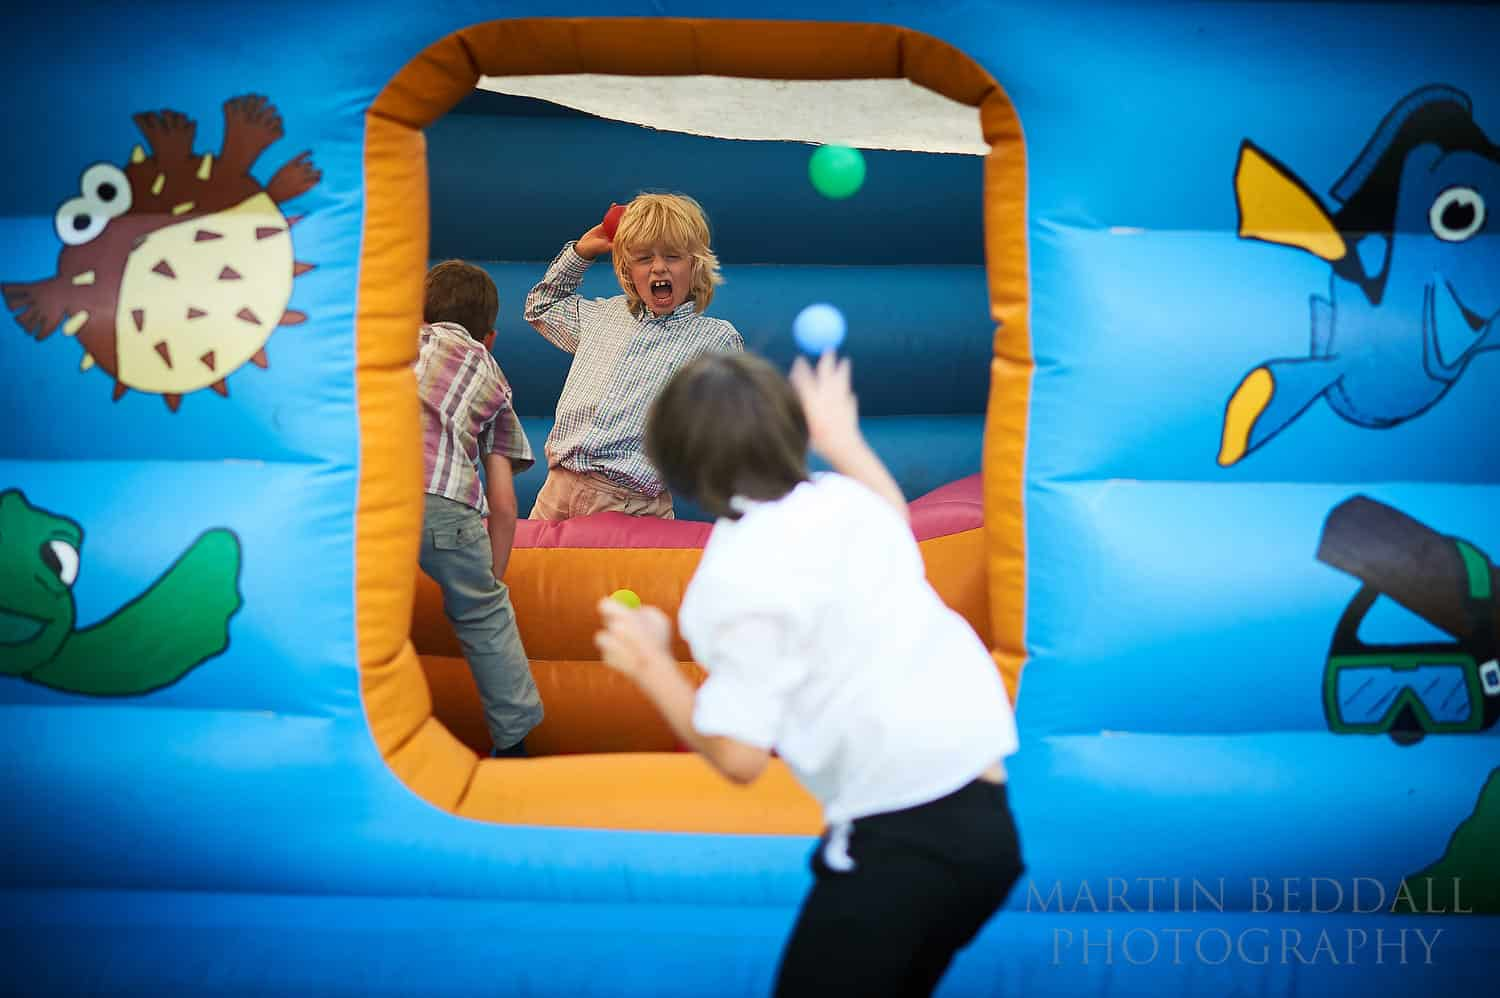 Kids play on the bouncy castle